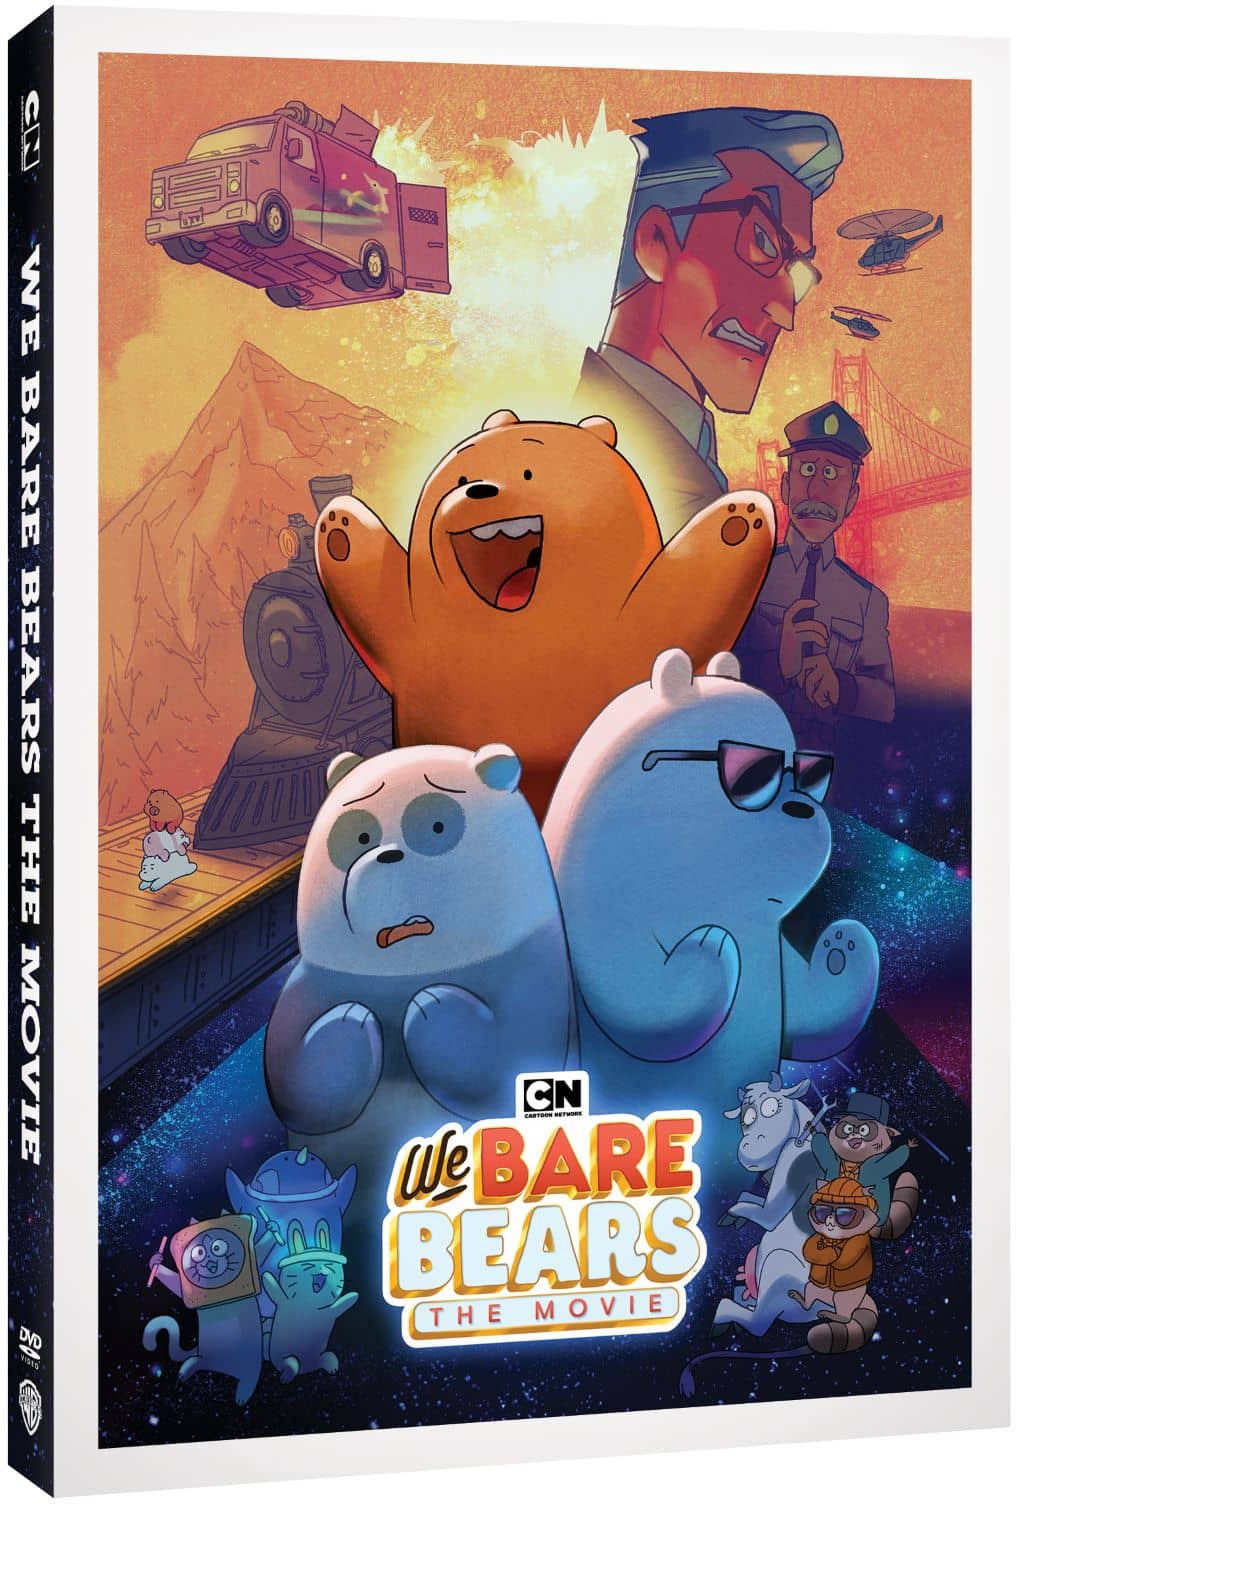 We Bare Bears The Movie Cover Artwork 3D